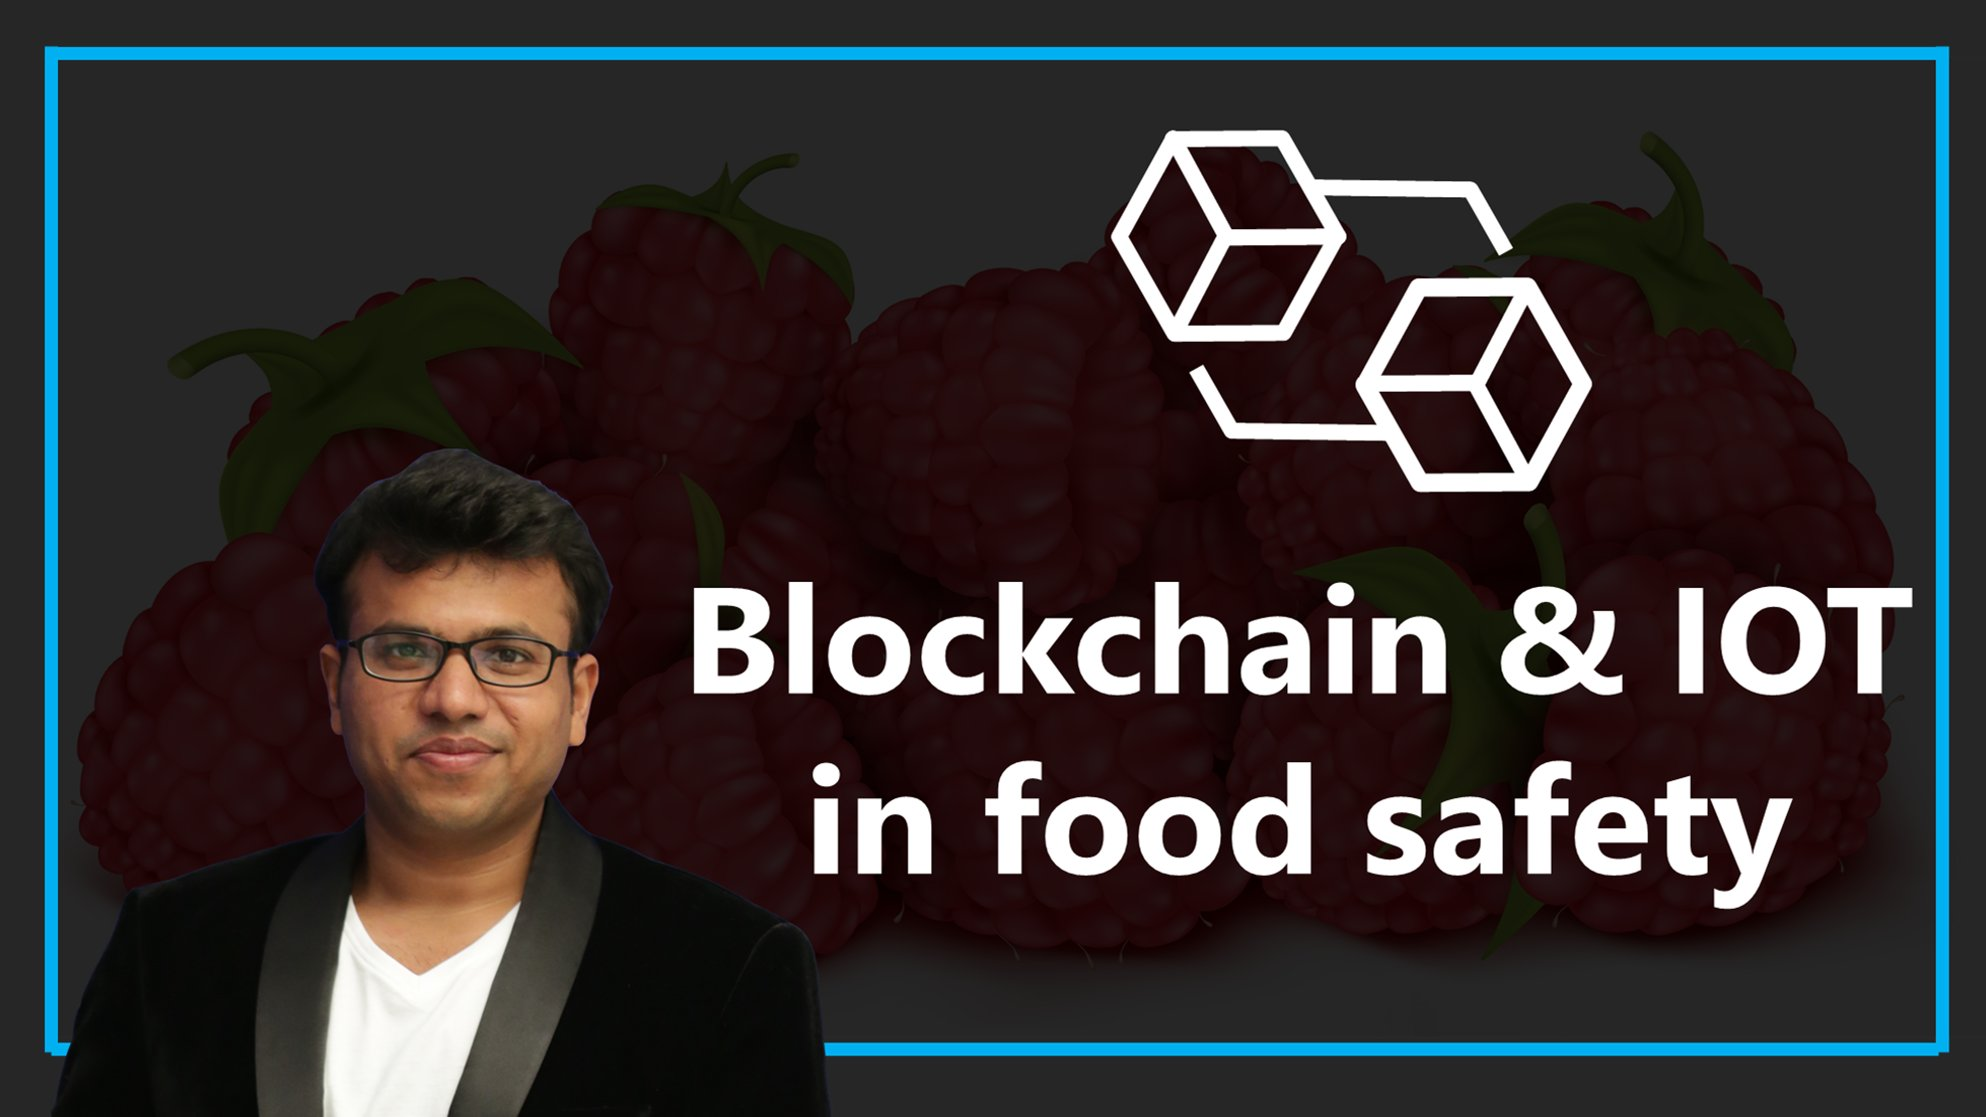 Blockchain Part 1 - Blockchain in Food Supply Chain and Food Safety